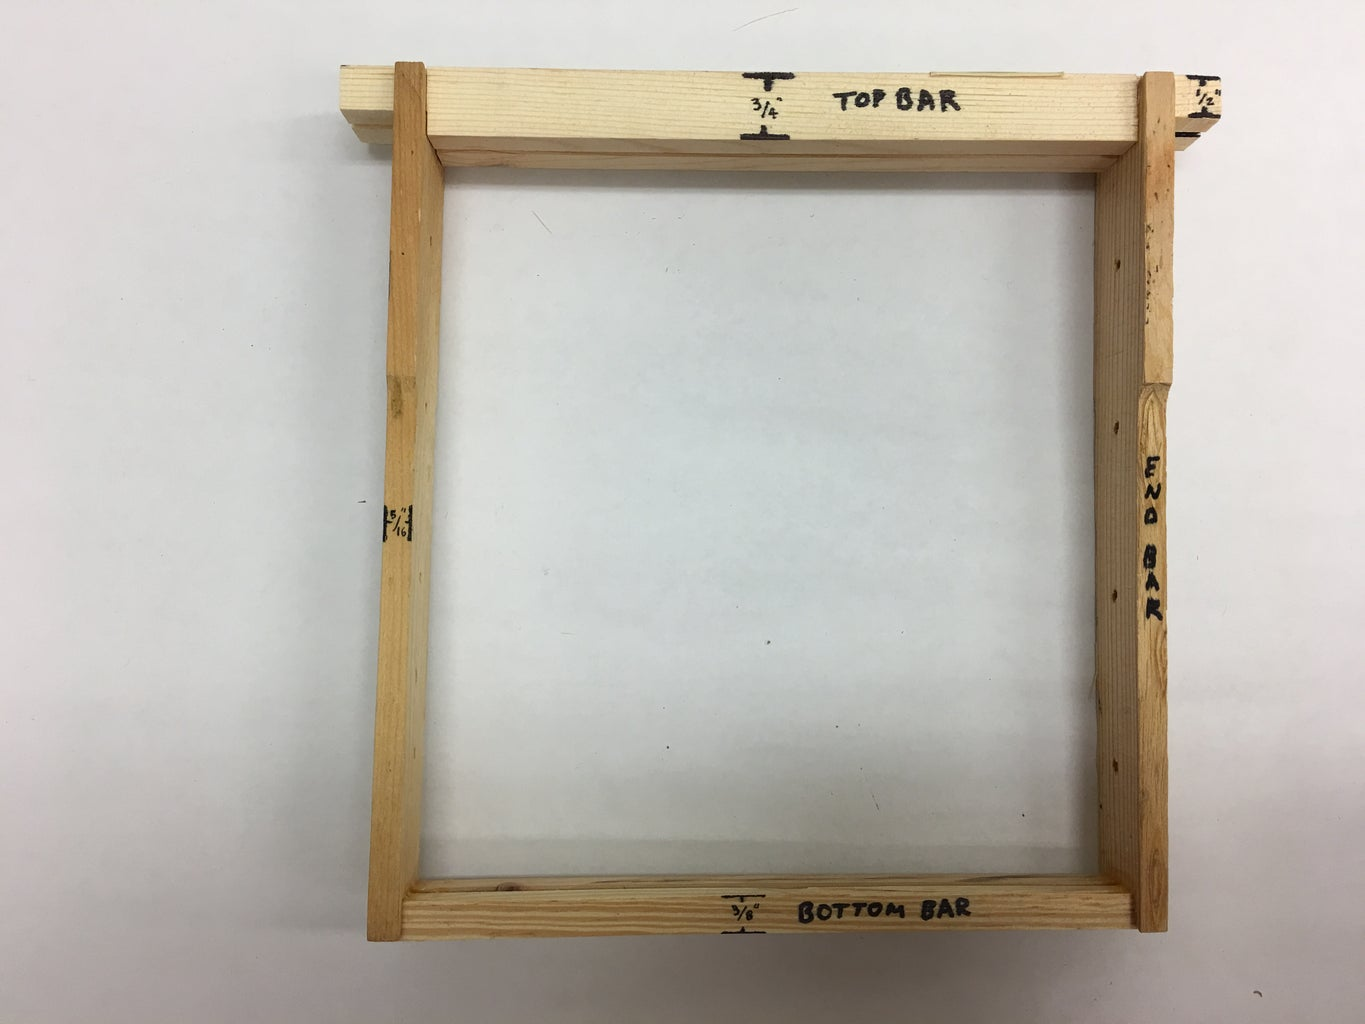 Frames With Wedge Top and And Split Bottom